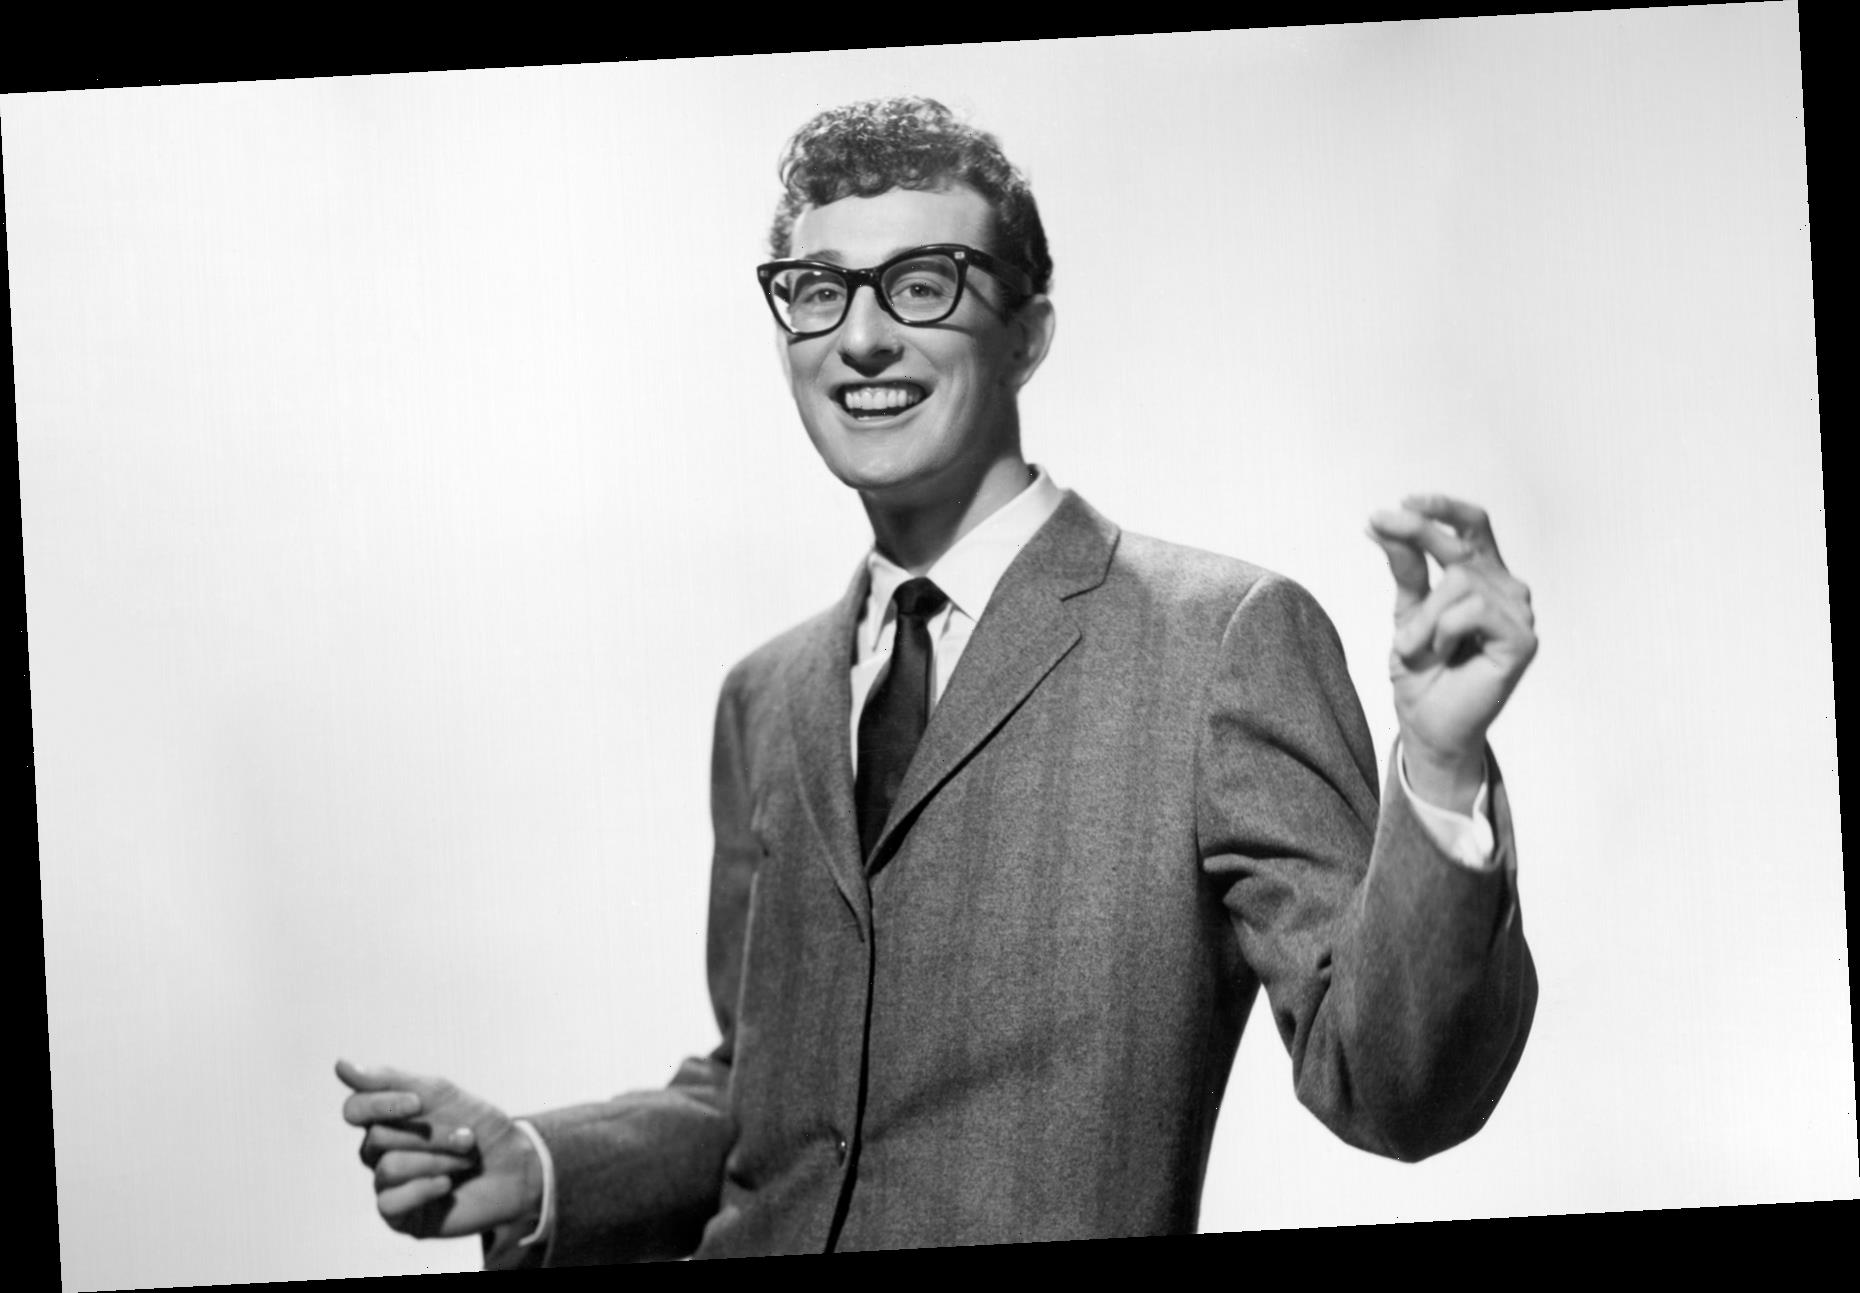 'The Buddy Holly Story' Deluxe Soundtrack Is Now Available